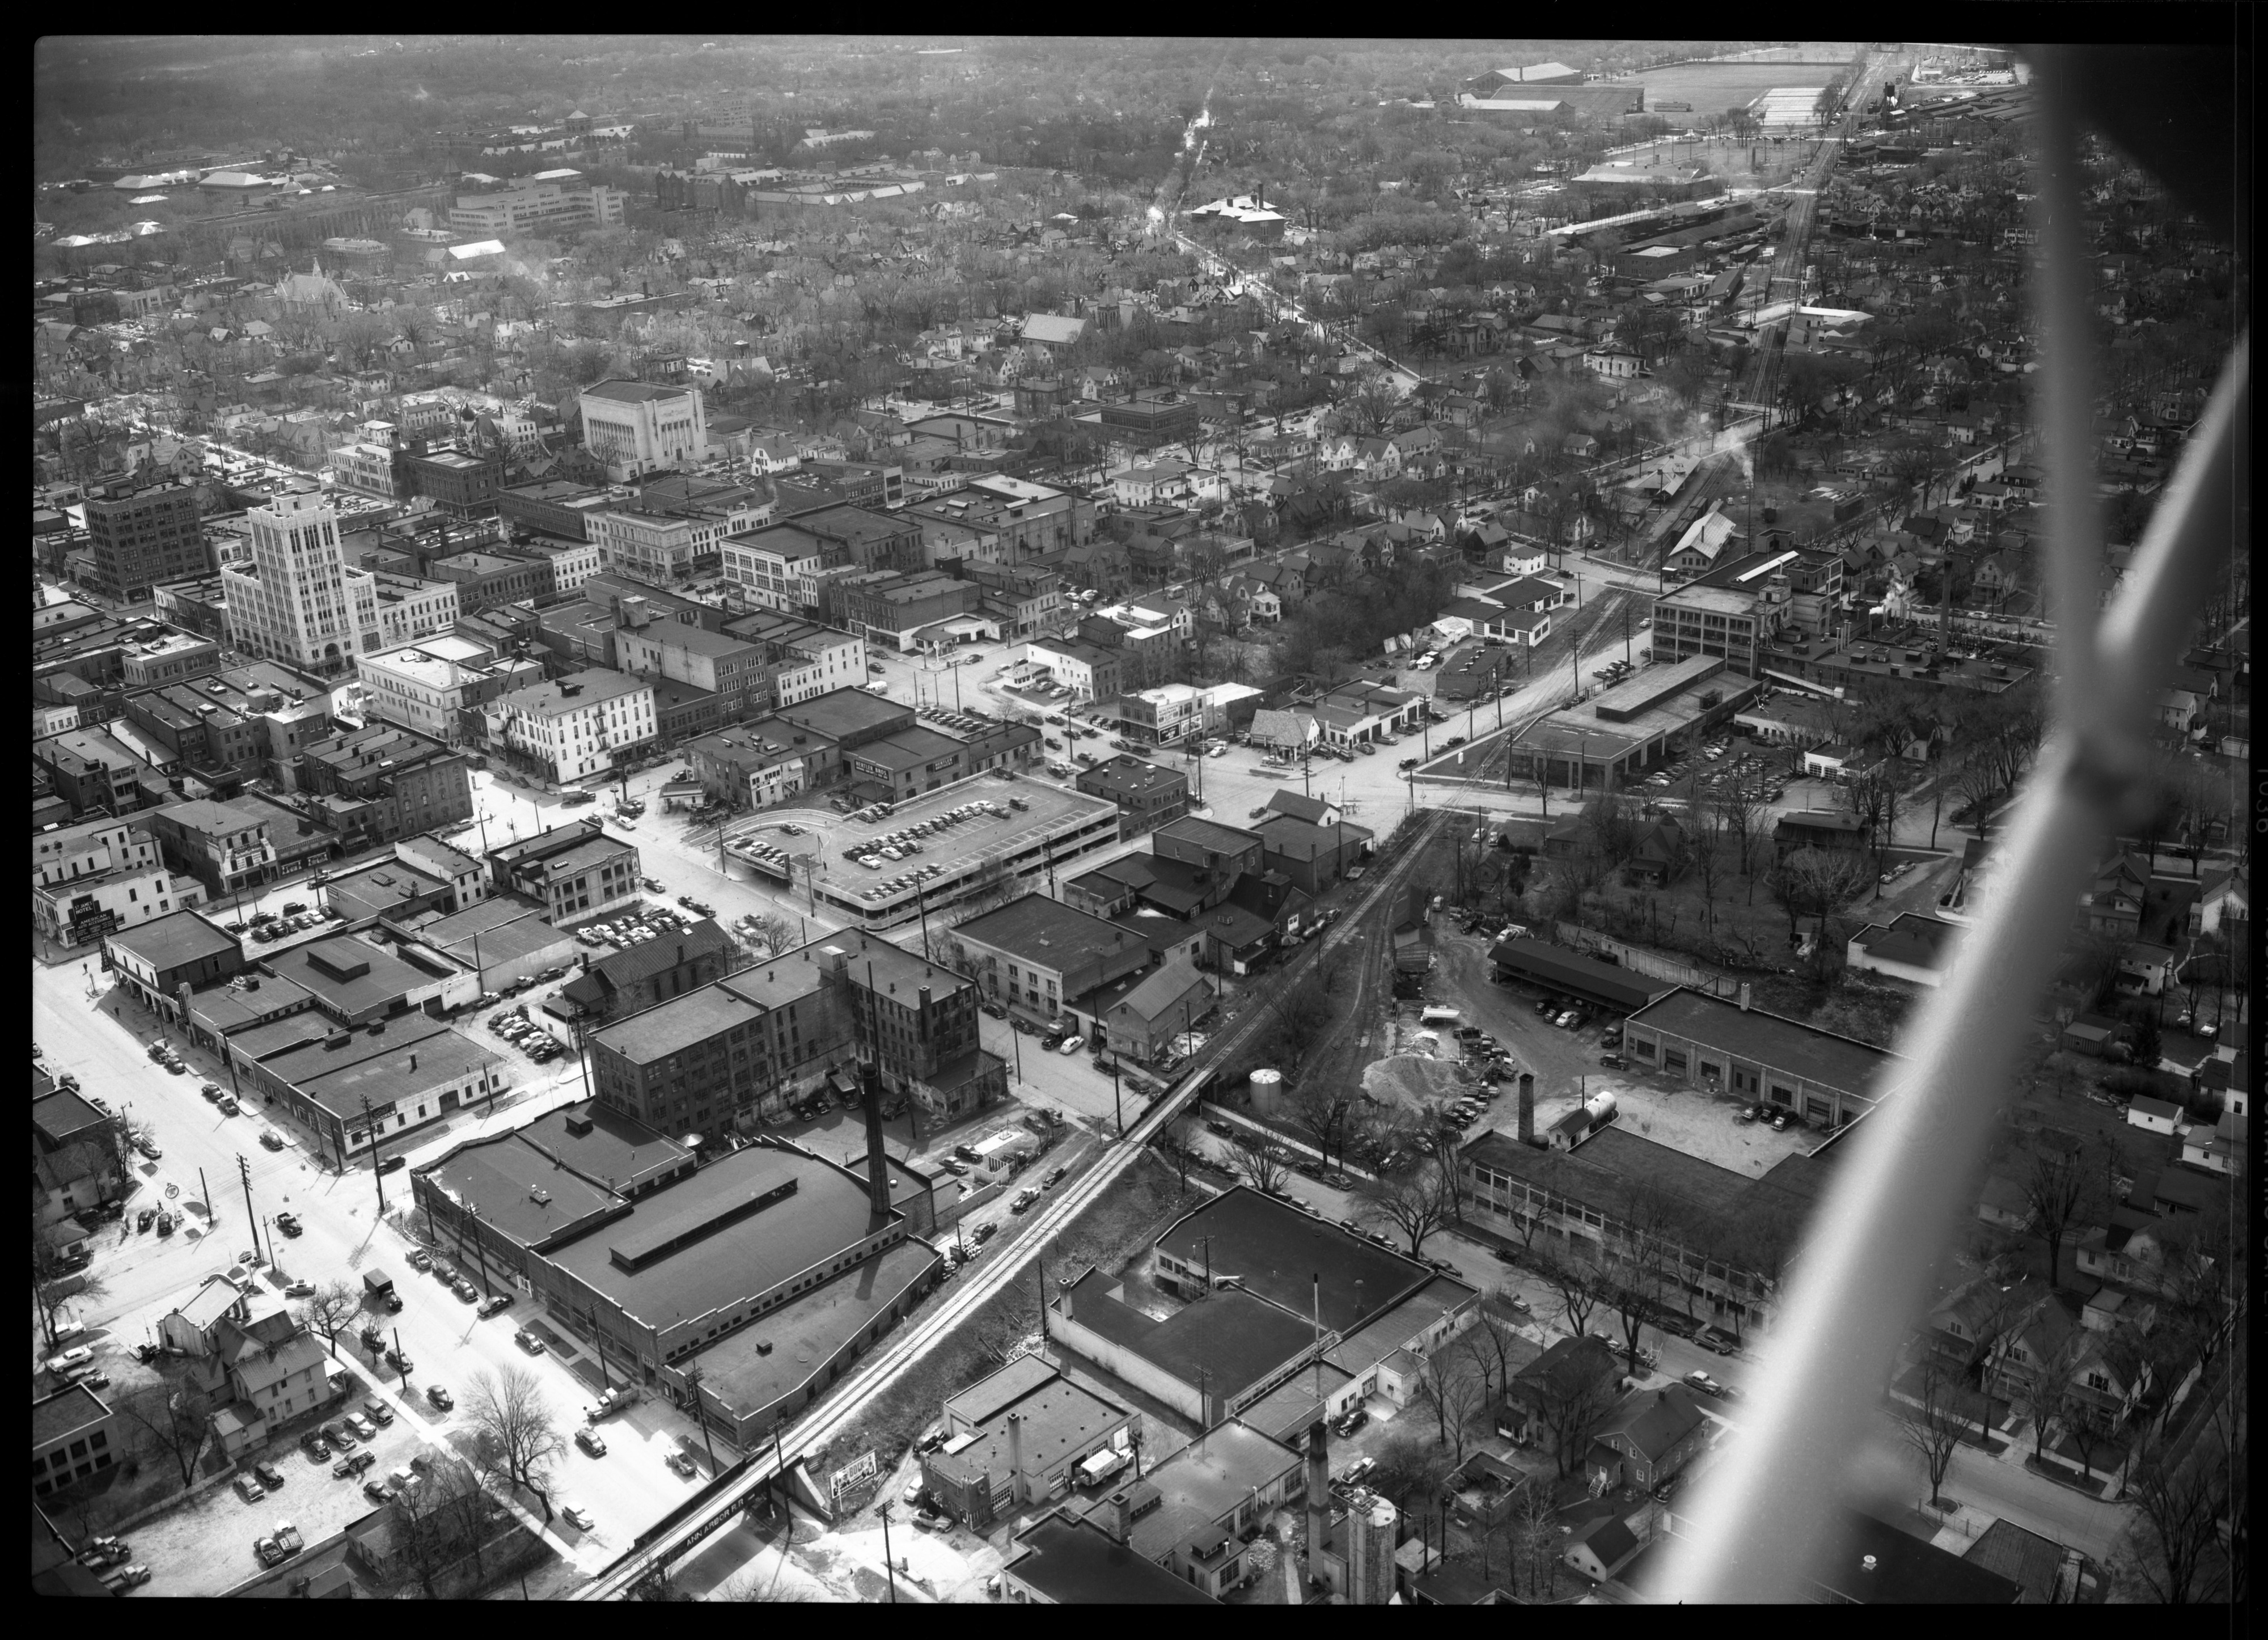 Aerial View with Parking Structure on Washington St, April 1950 image